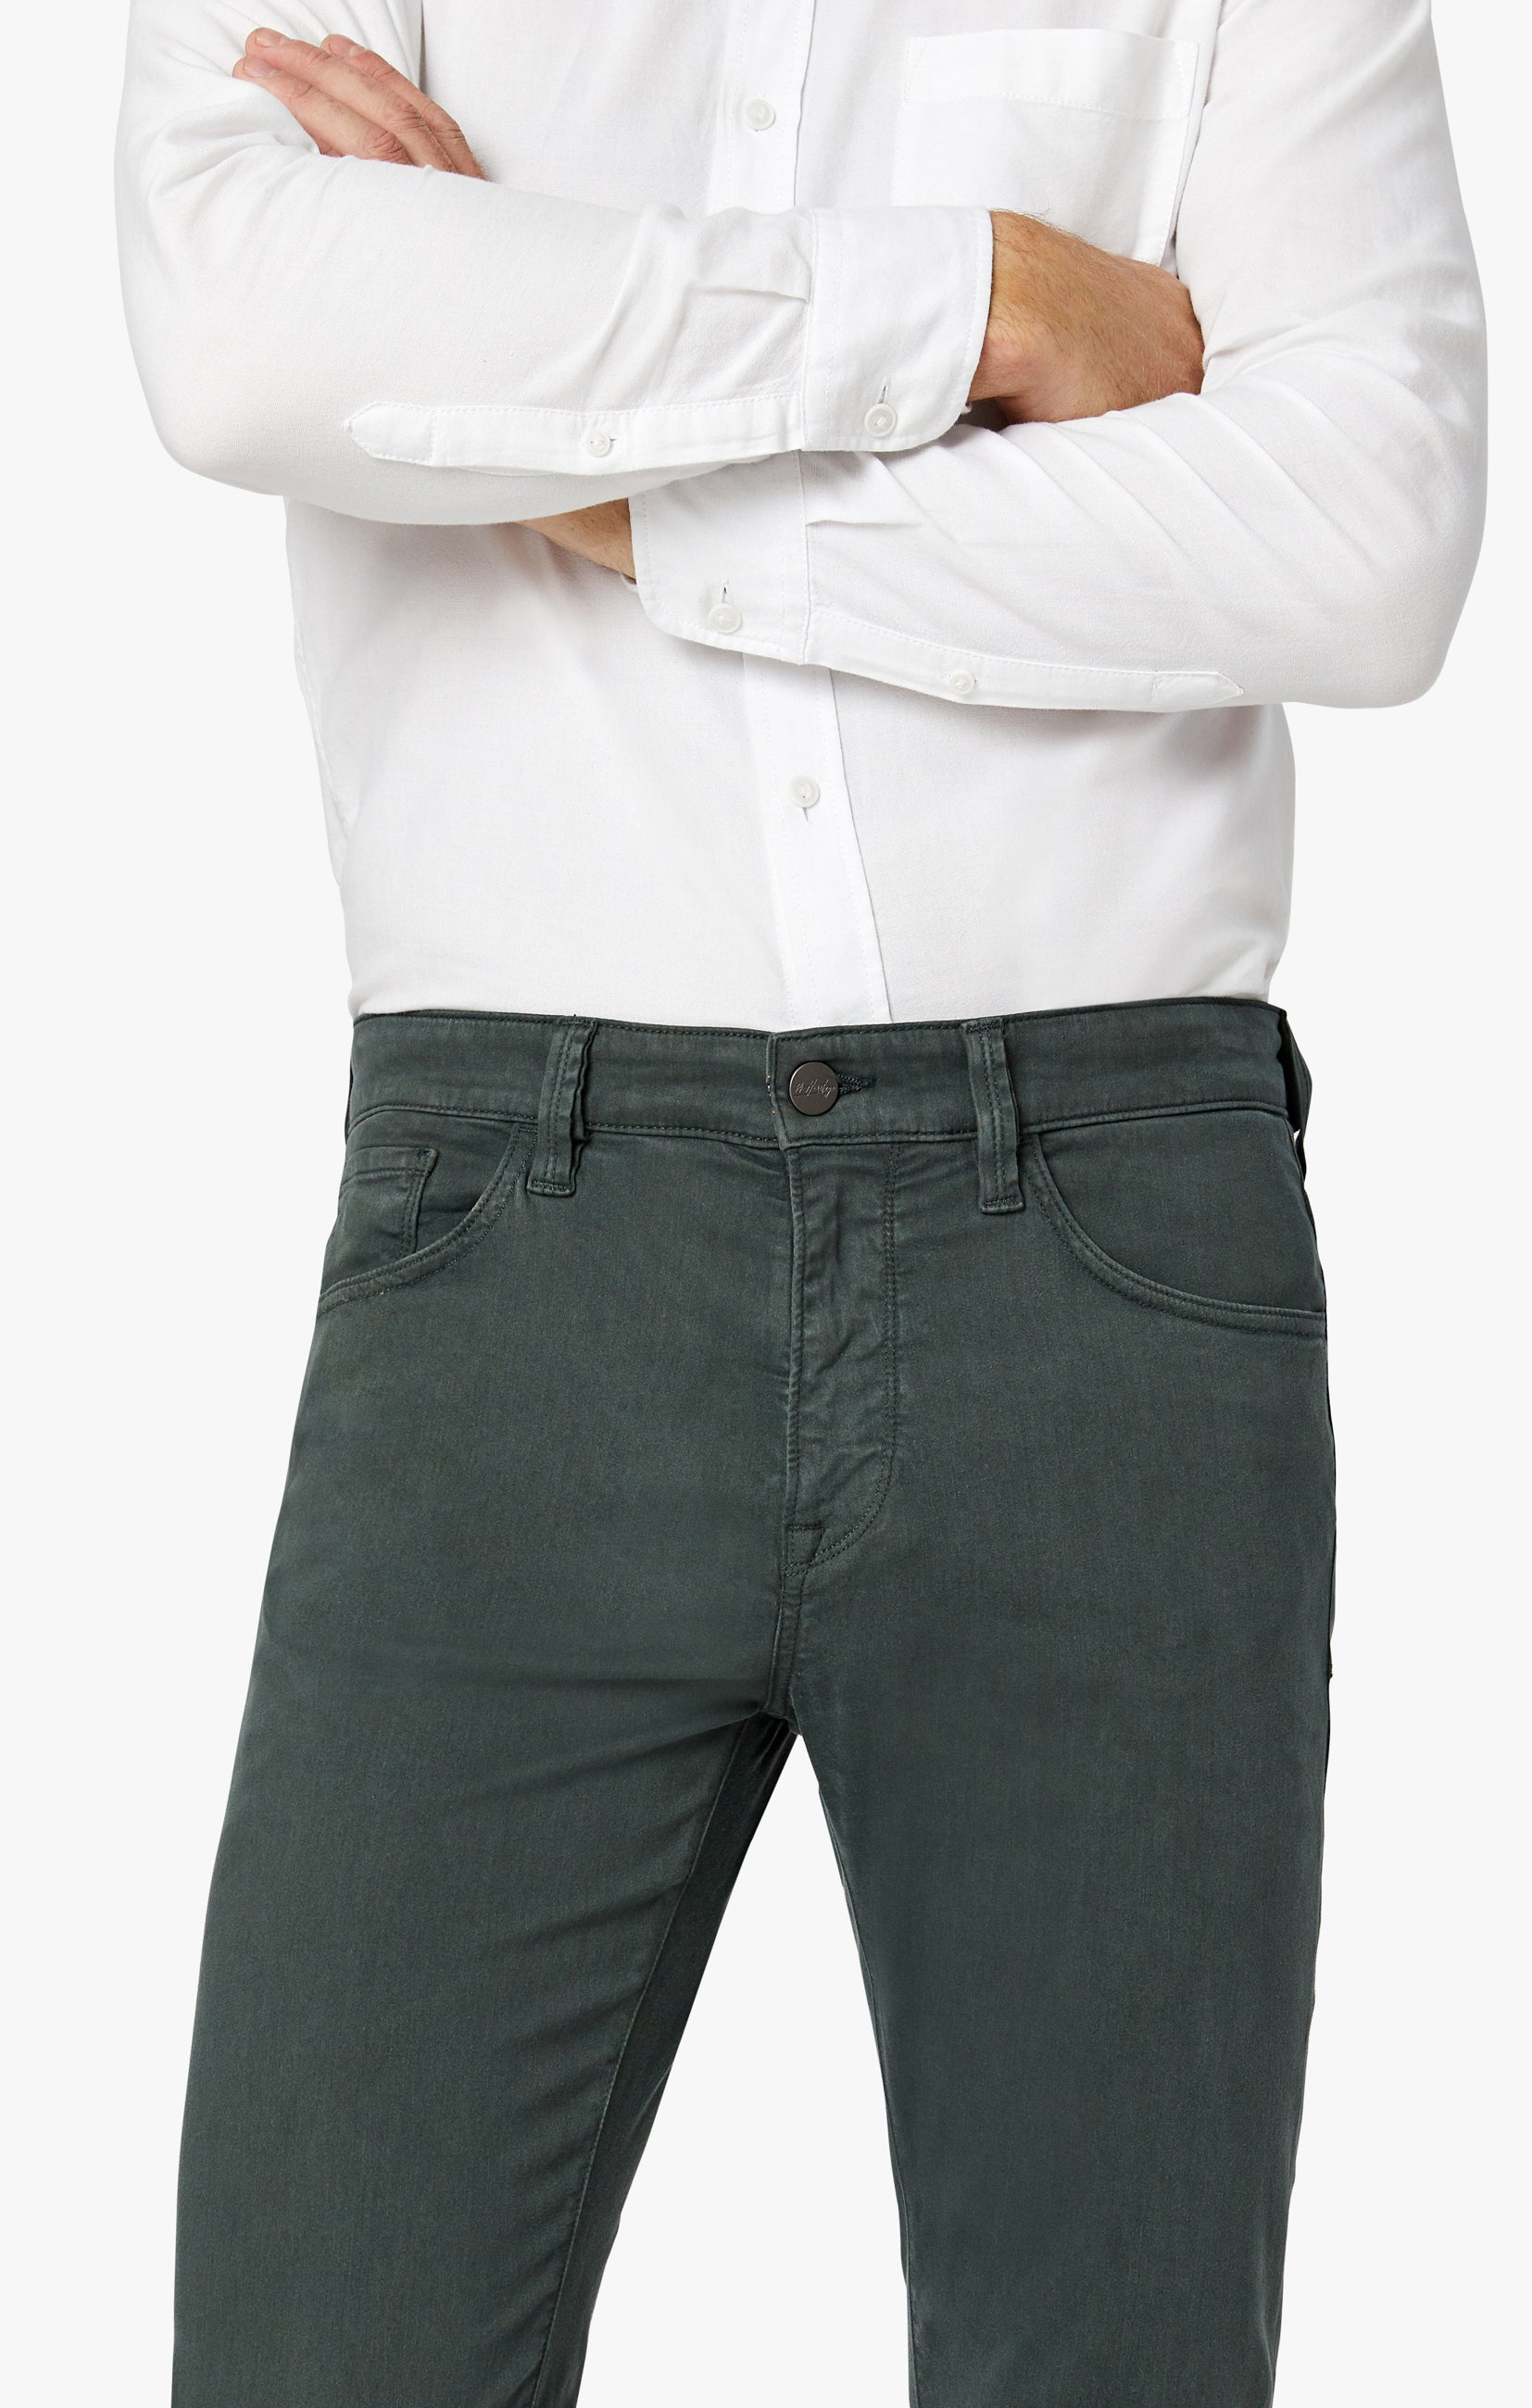 Charisma Relaxed Straight Pants in Urban Twill Image 3